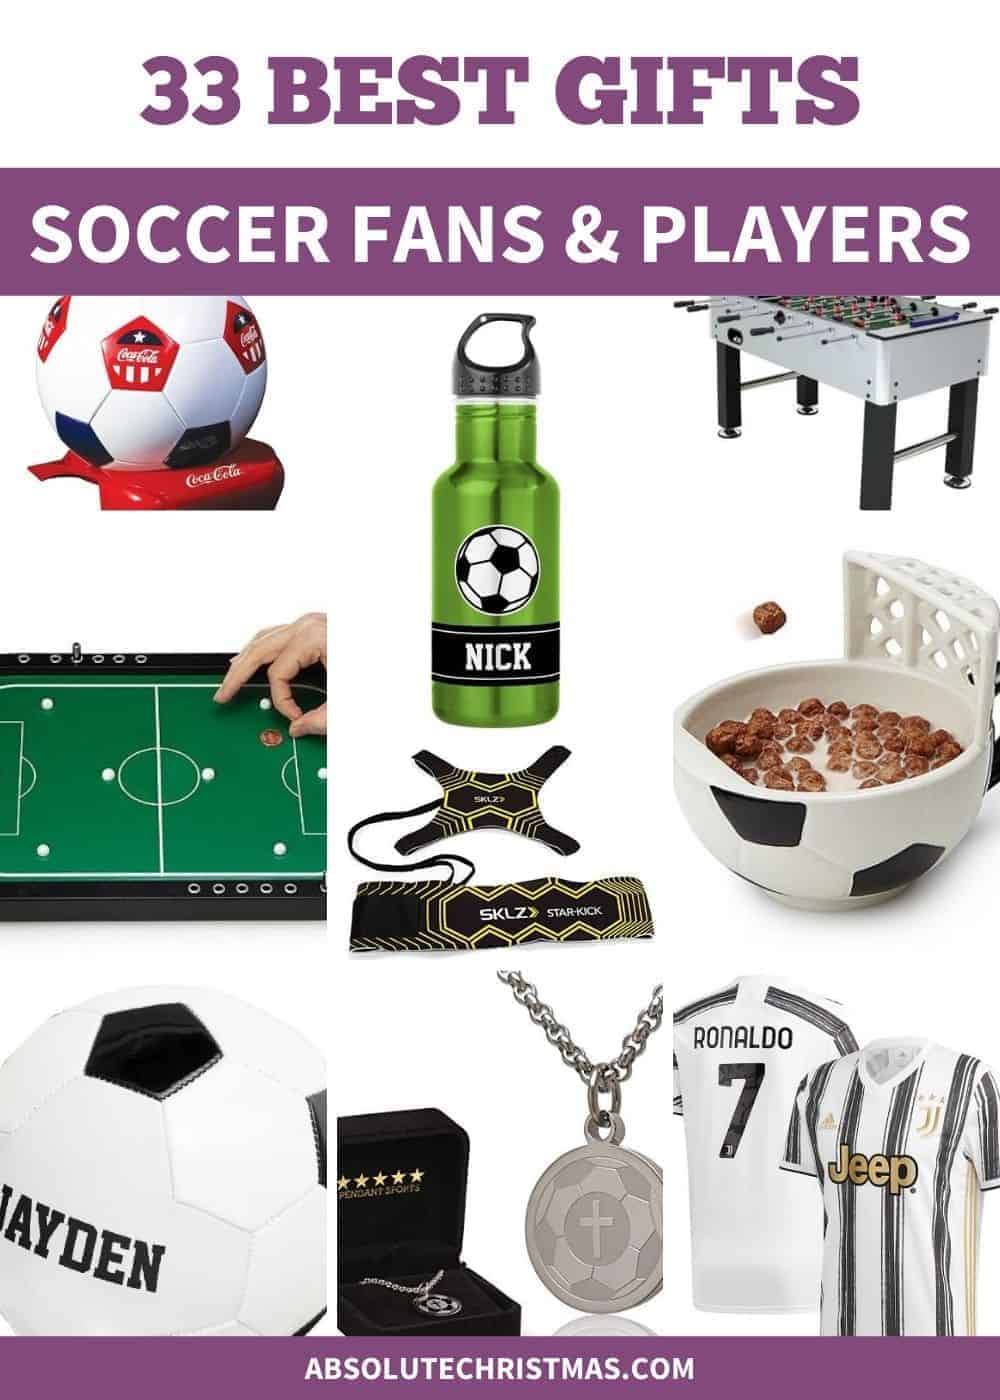 Best Gifts for Soccer Fans - Soccer Gifts